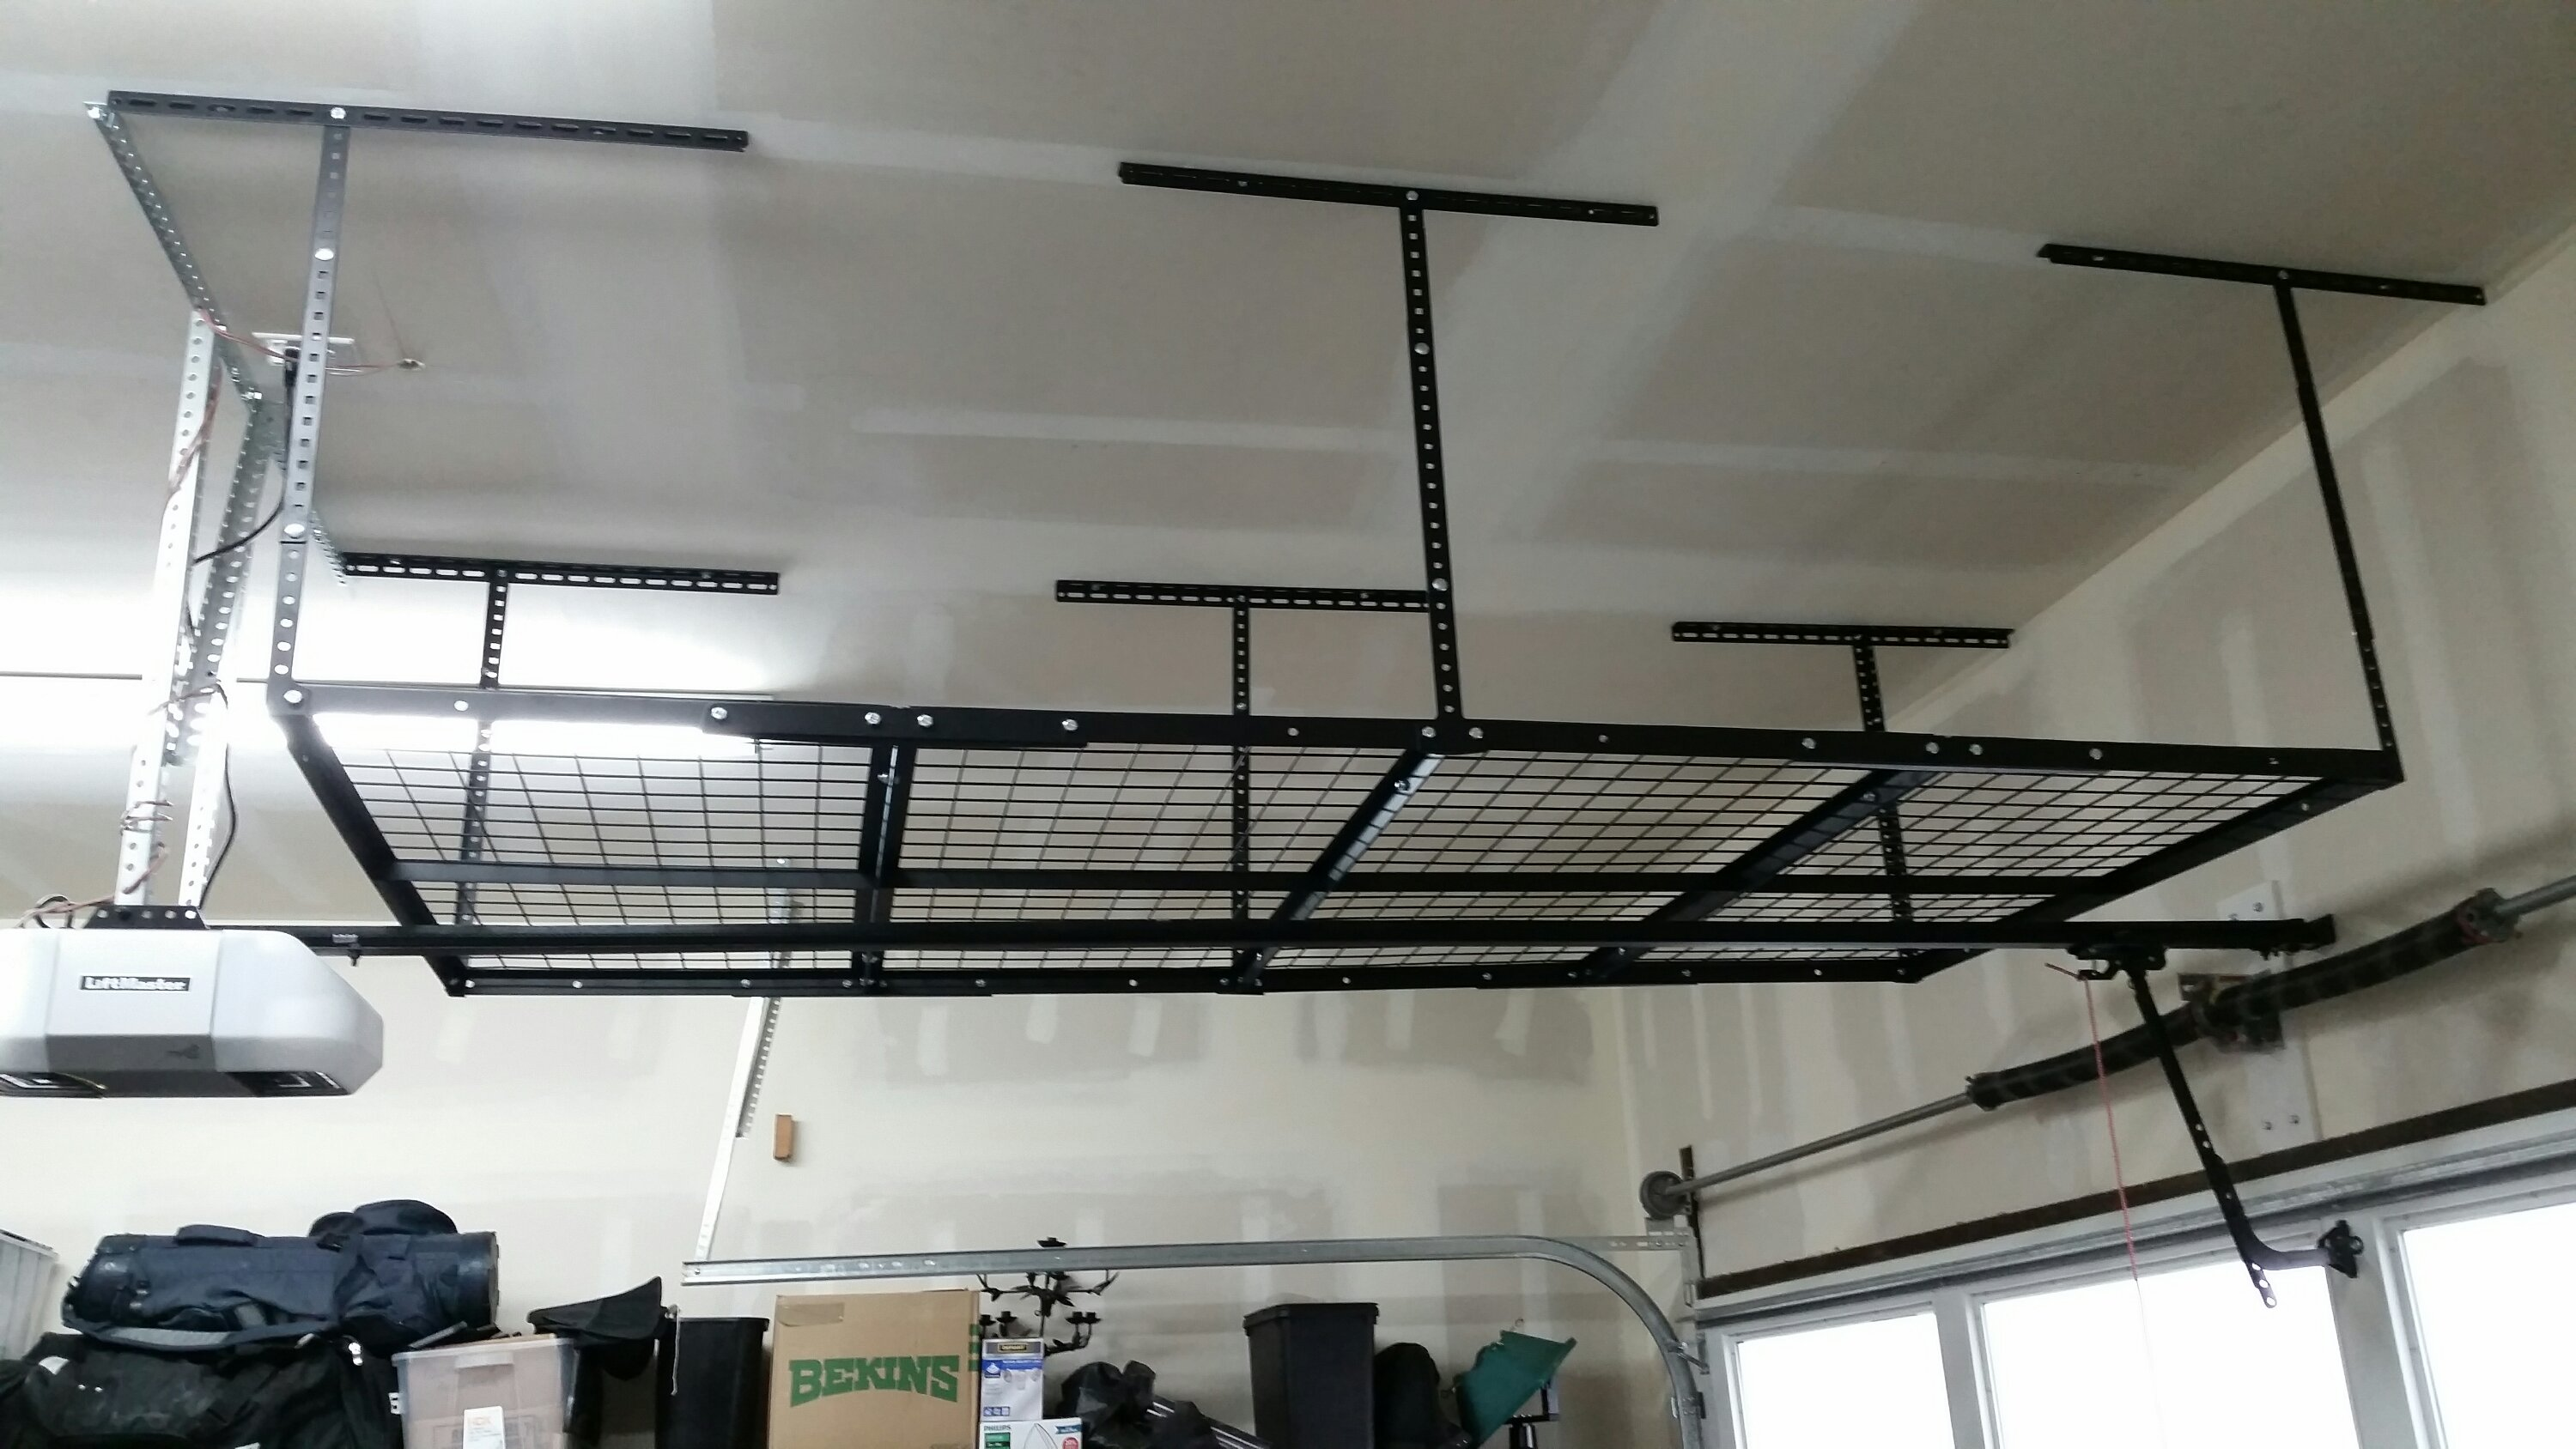 garage ceilings system units modular drawer storage systems full ceiling size racks large design cabinets best of